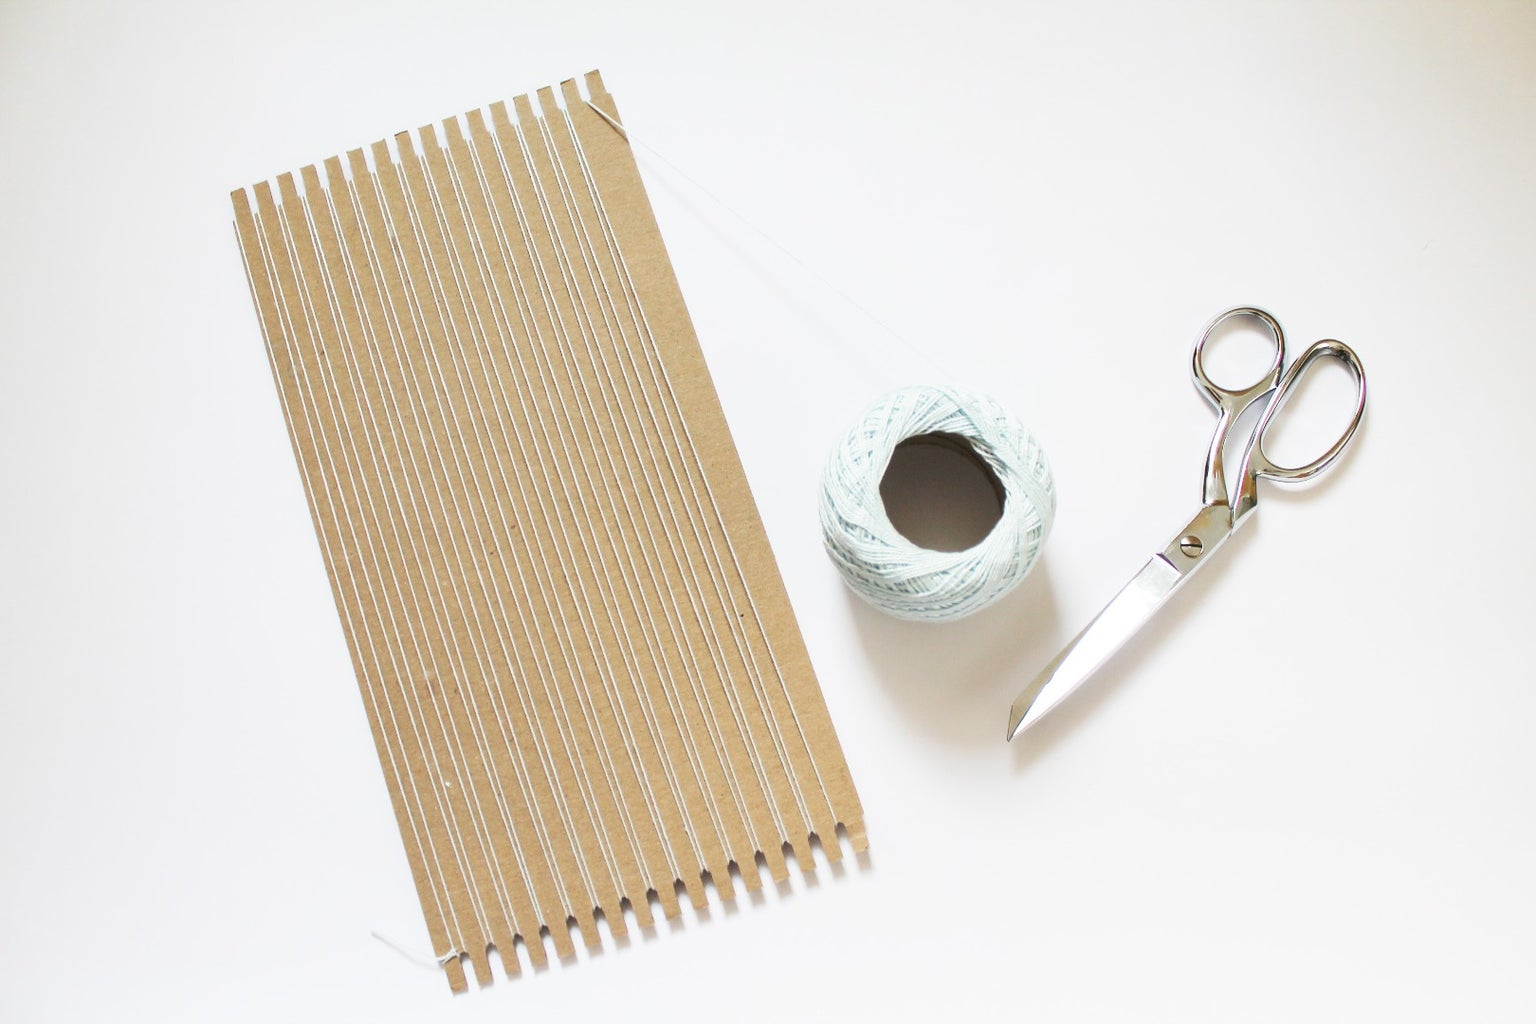 Set Up Your Loom